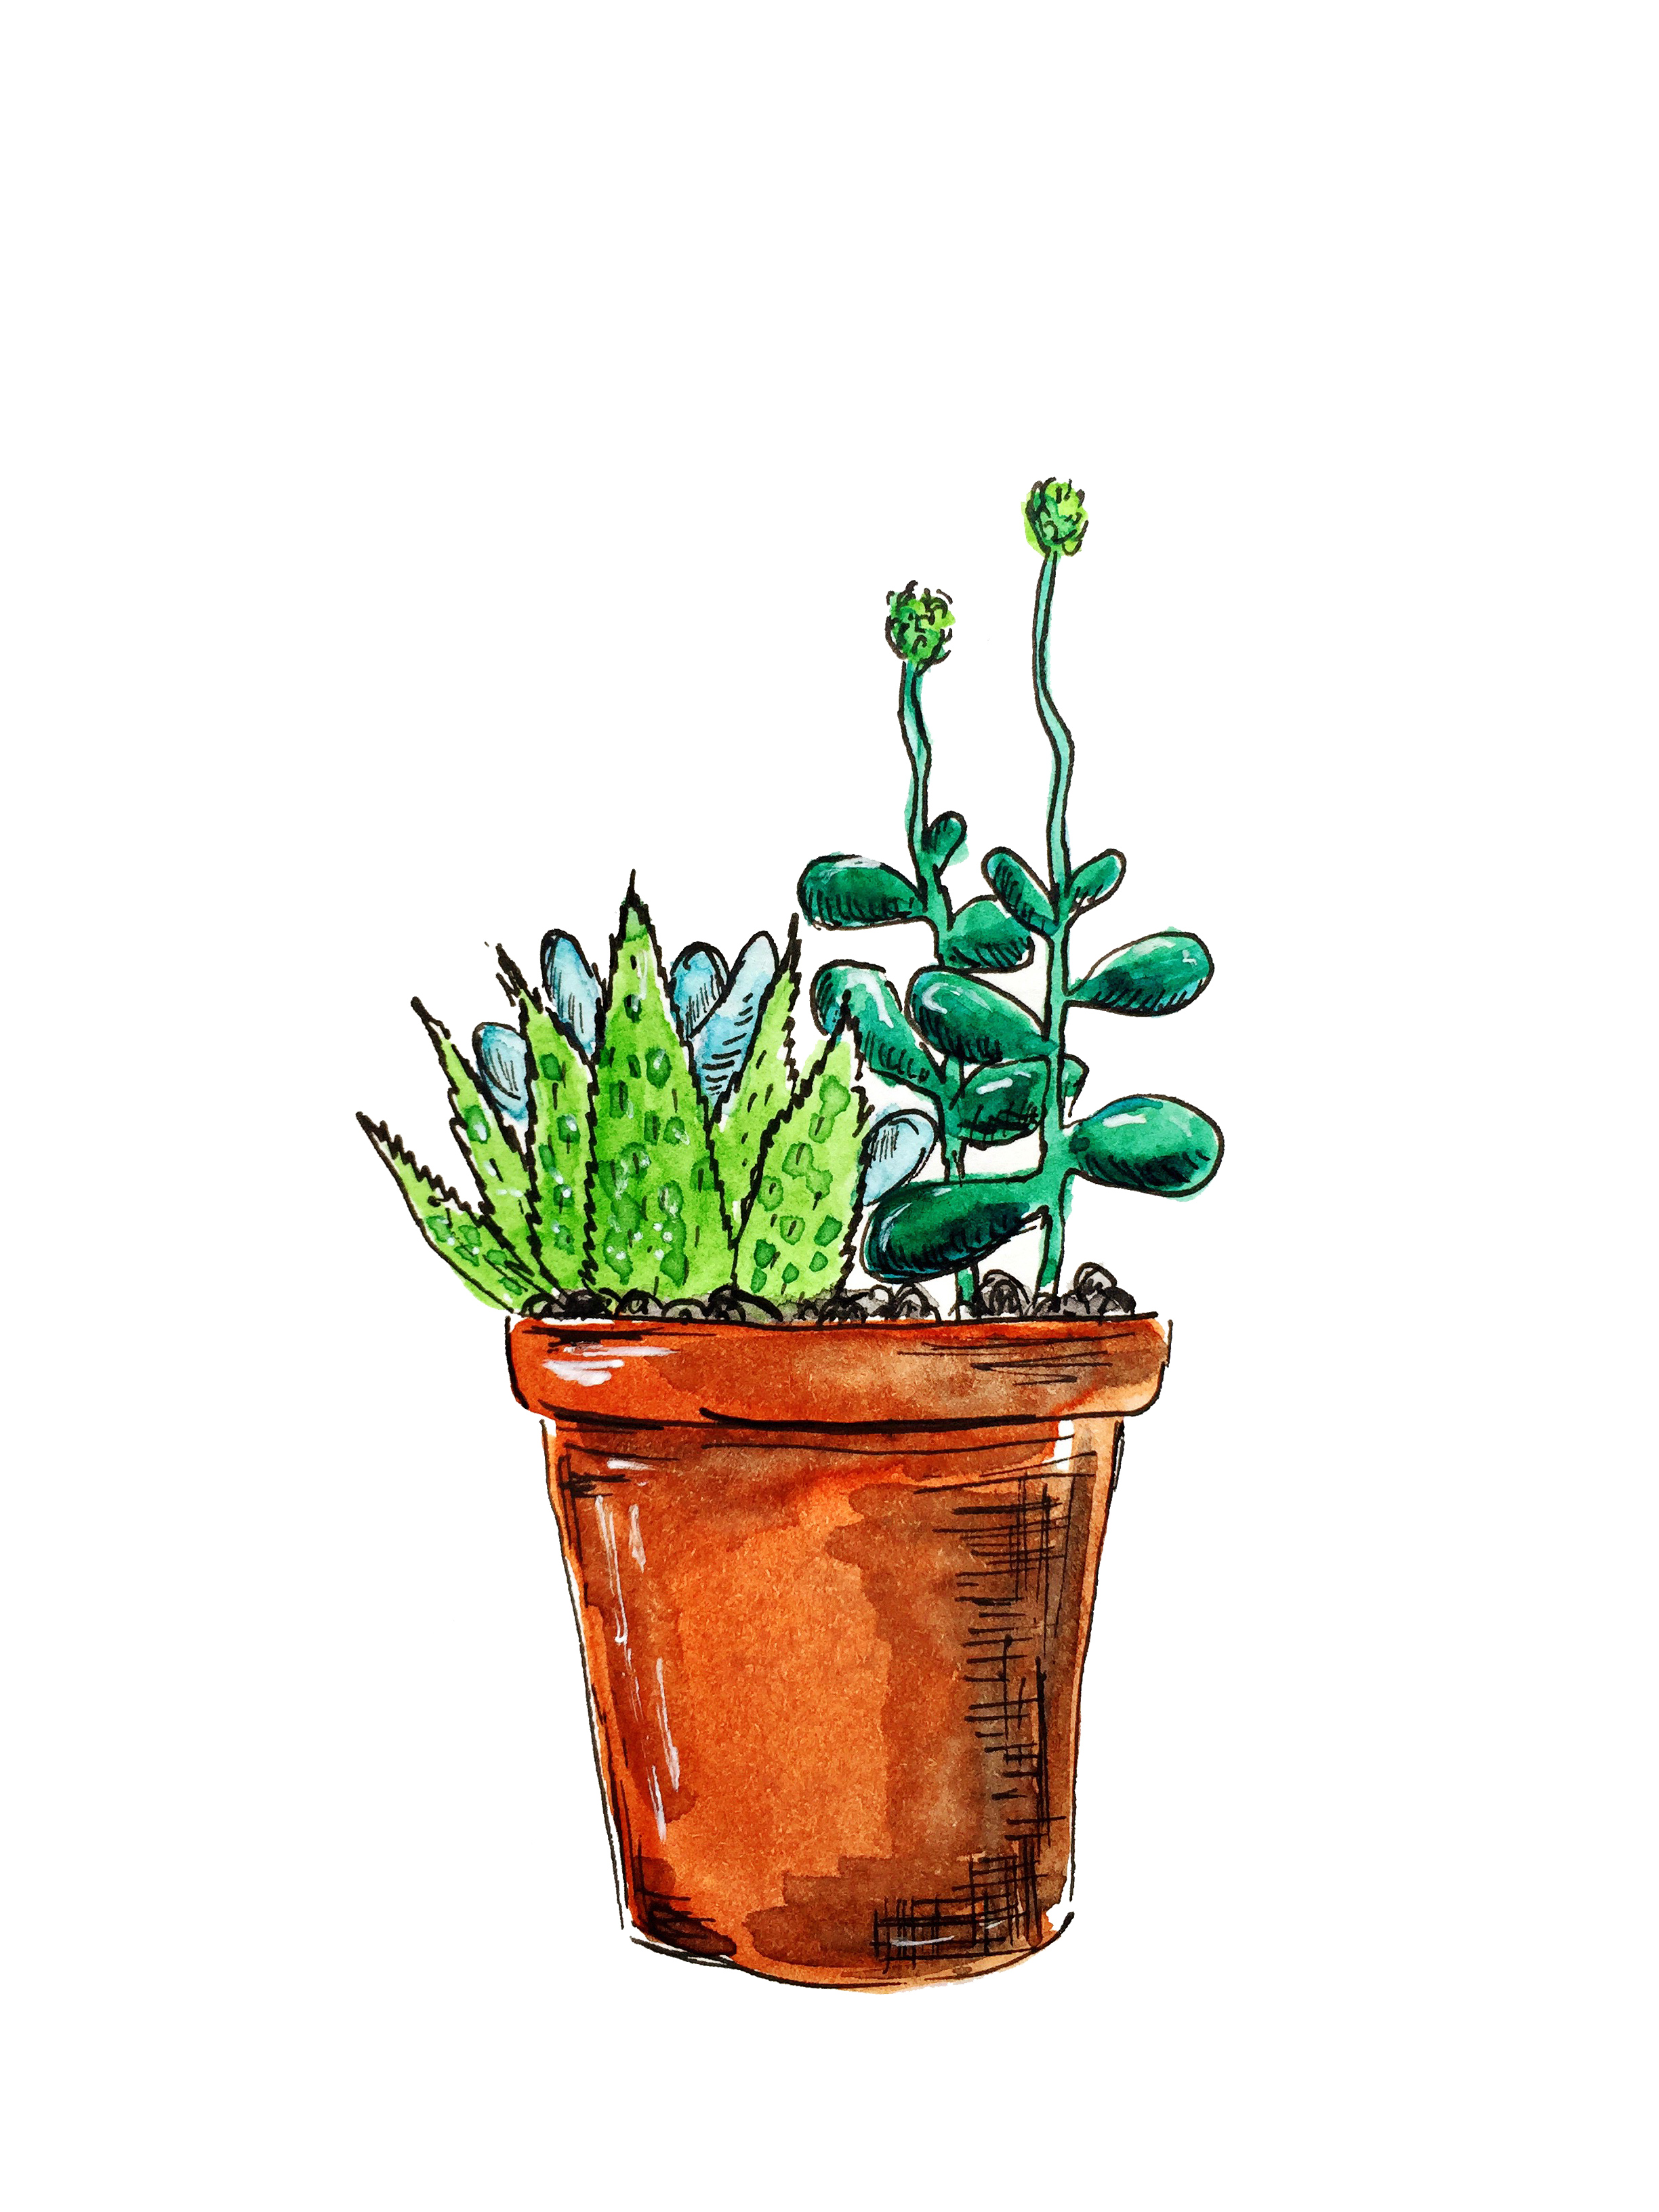 Another Succulent Printable Olya Schmidt